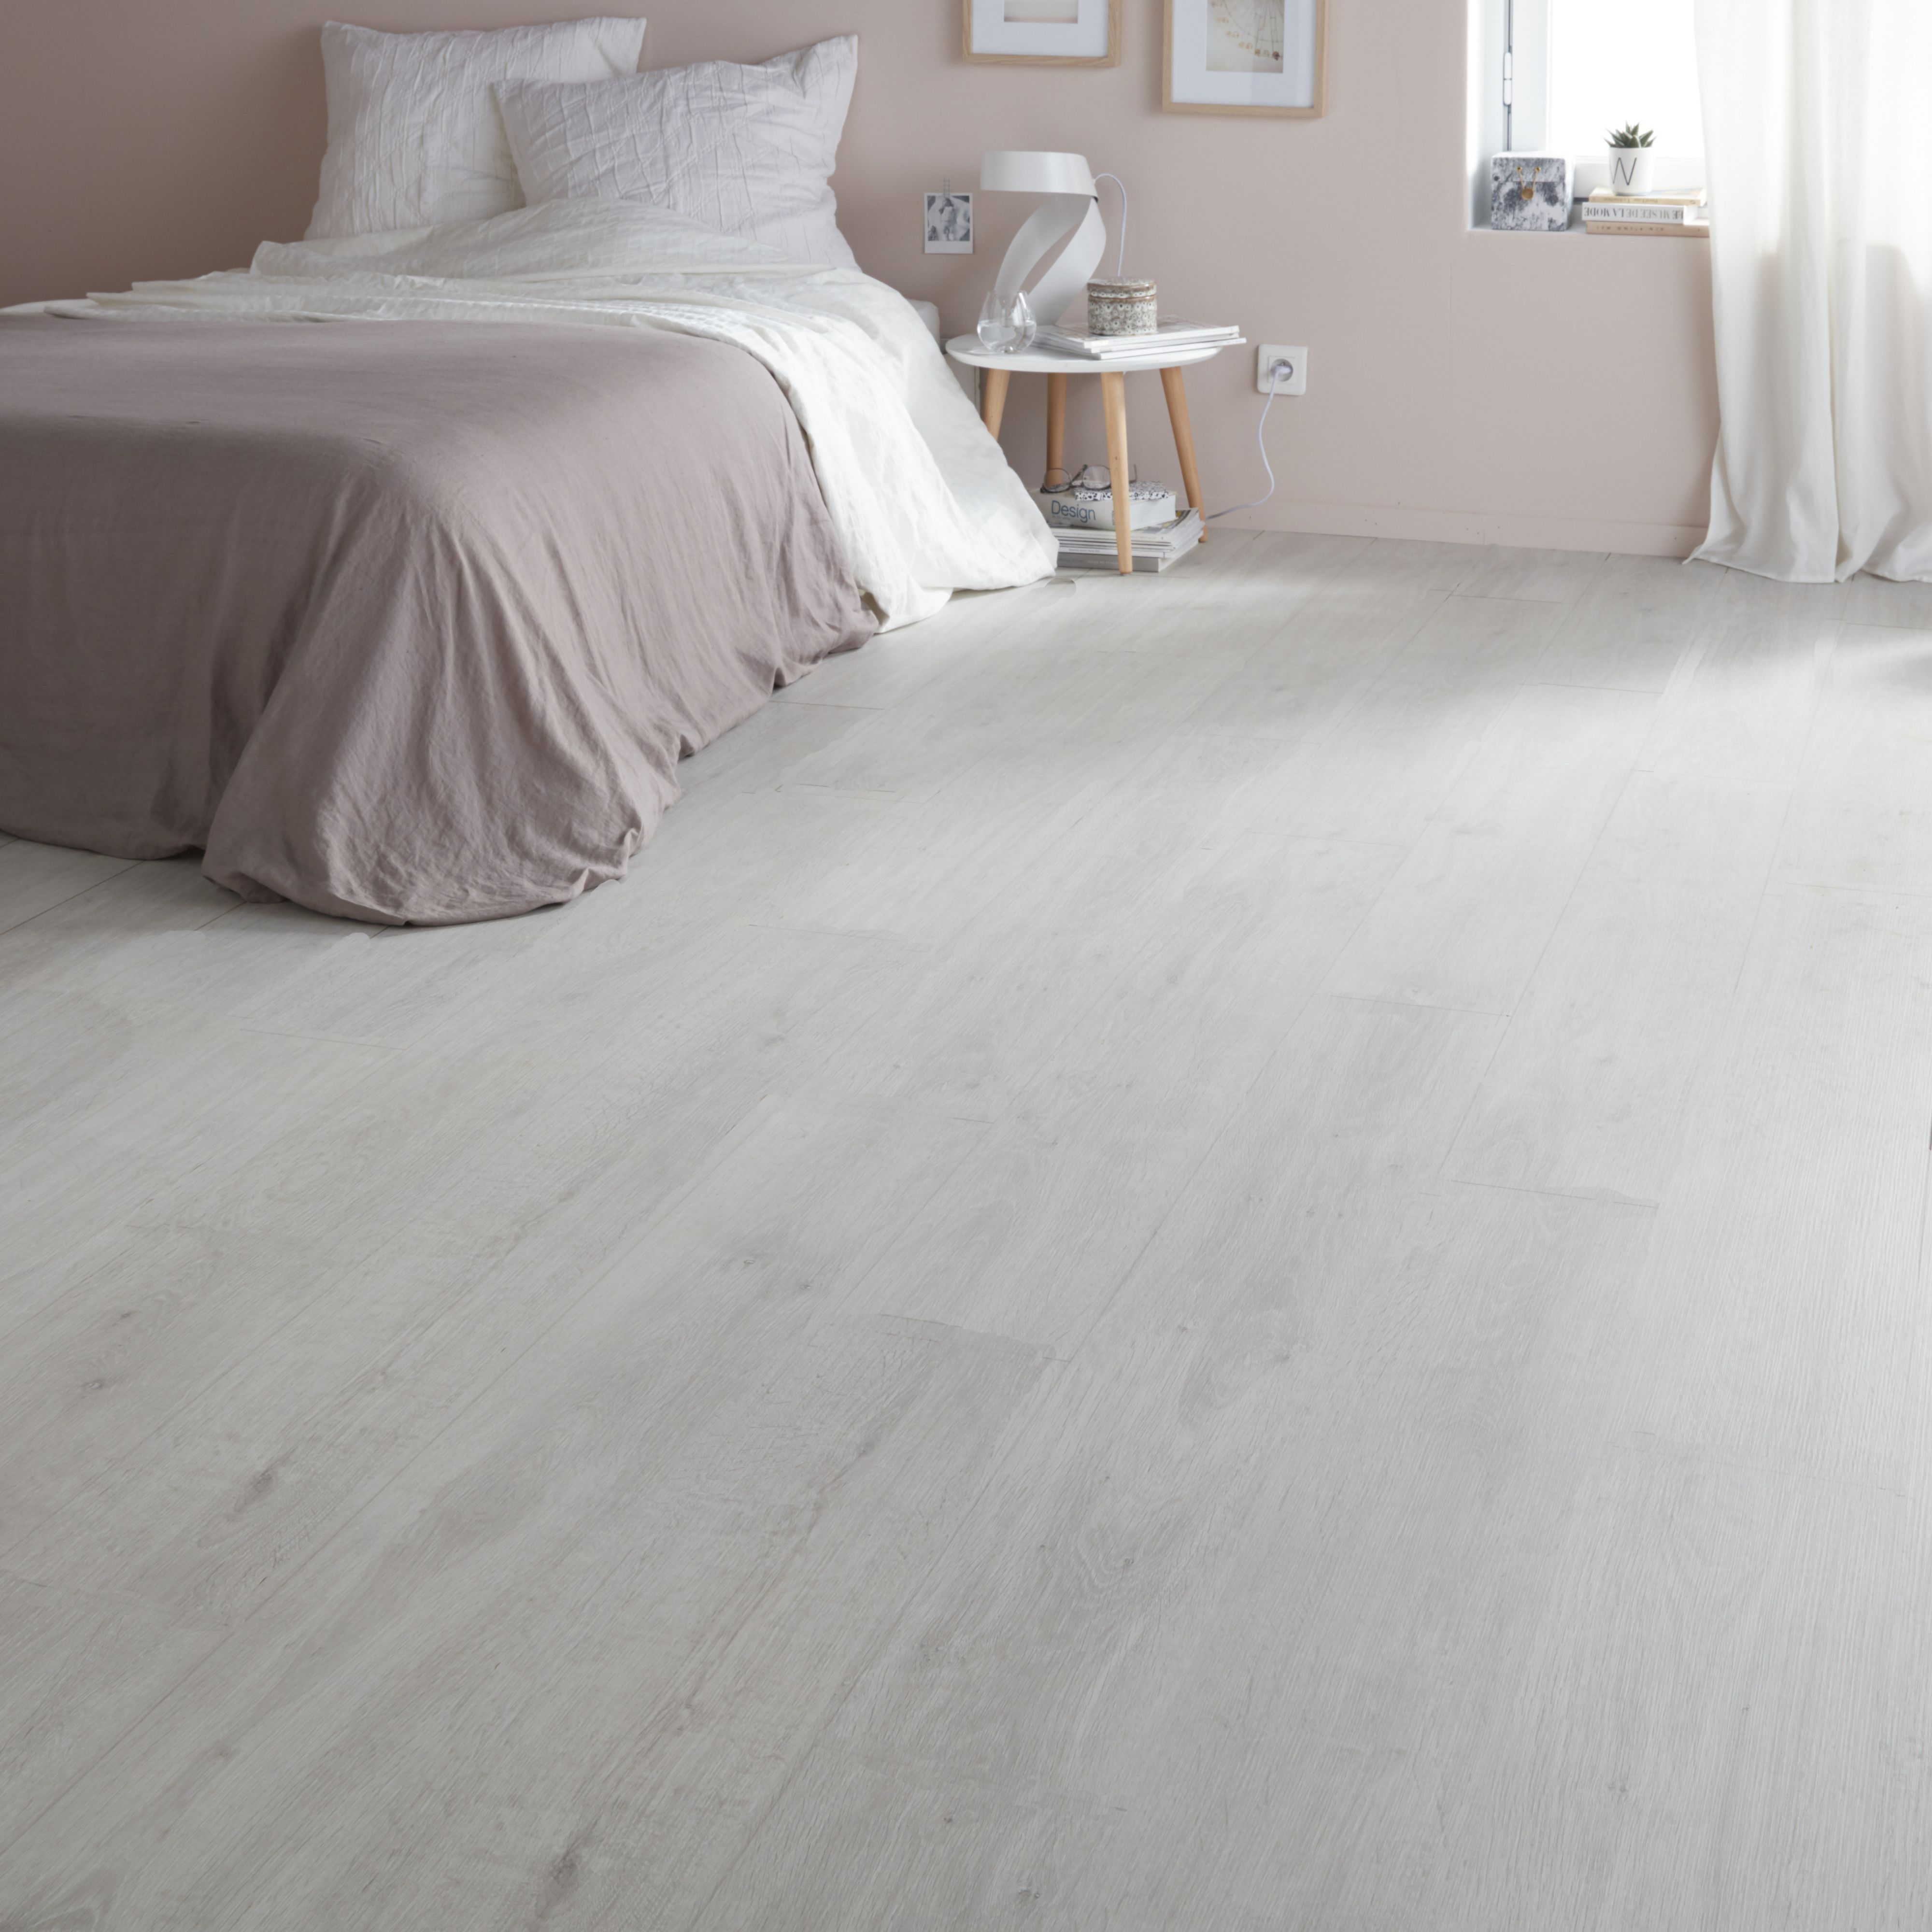 Geelong Grey Oak Effect Laminate Flooring 2 467 M Pack White Laminate Flooring Grey Laminate Flooring Laminate Flooring